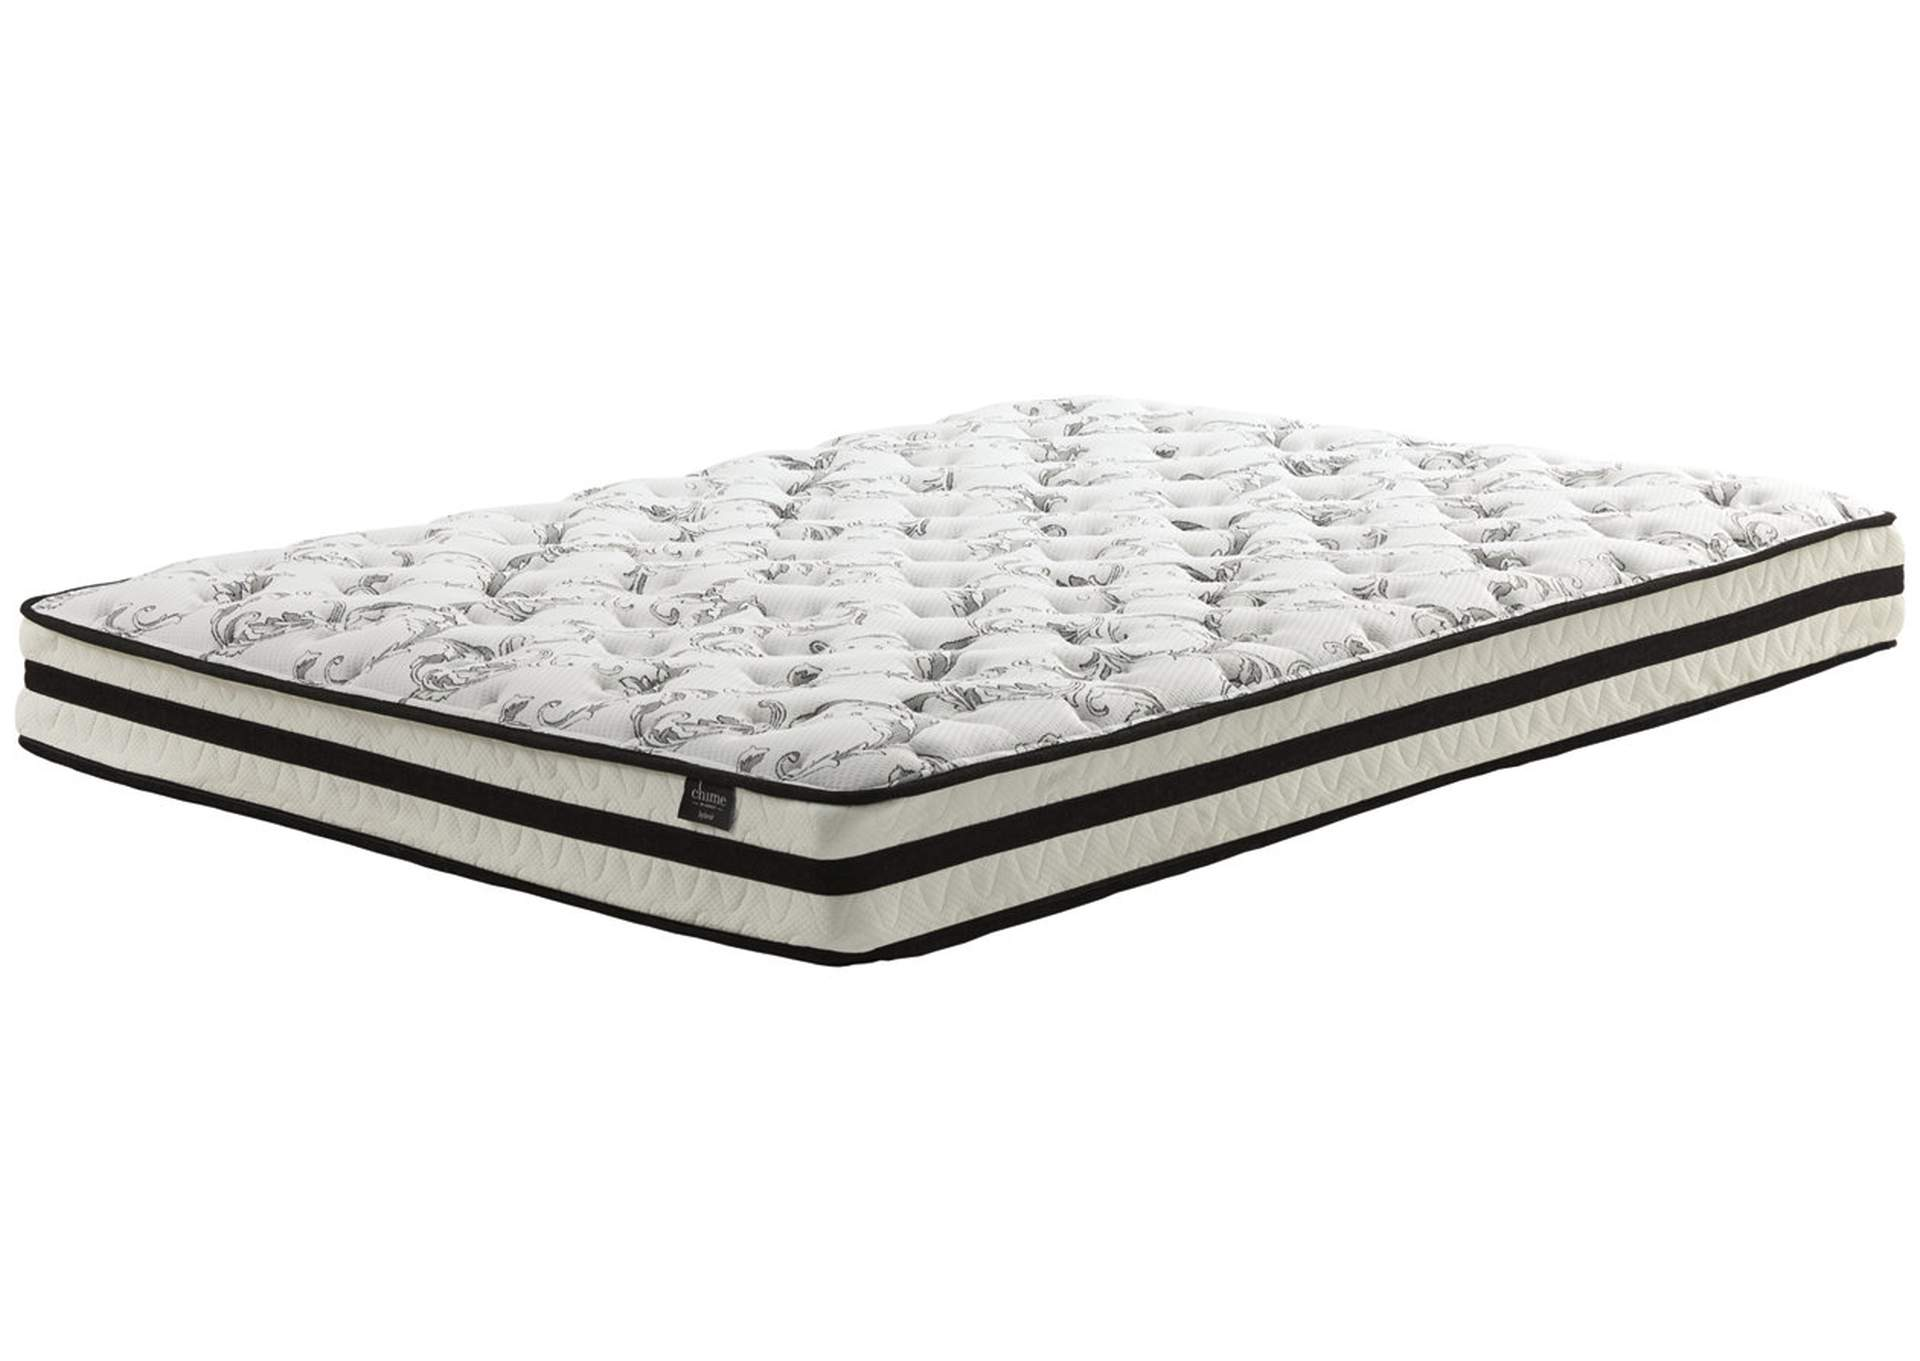 8 Inch Chime Innerspring King Mattress in a Box,Sierra Sleep by Ashley